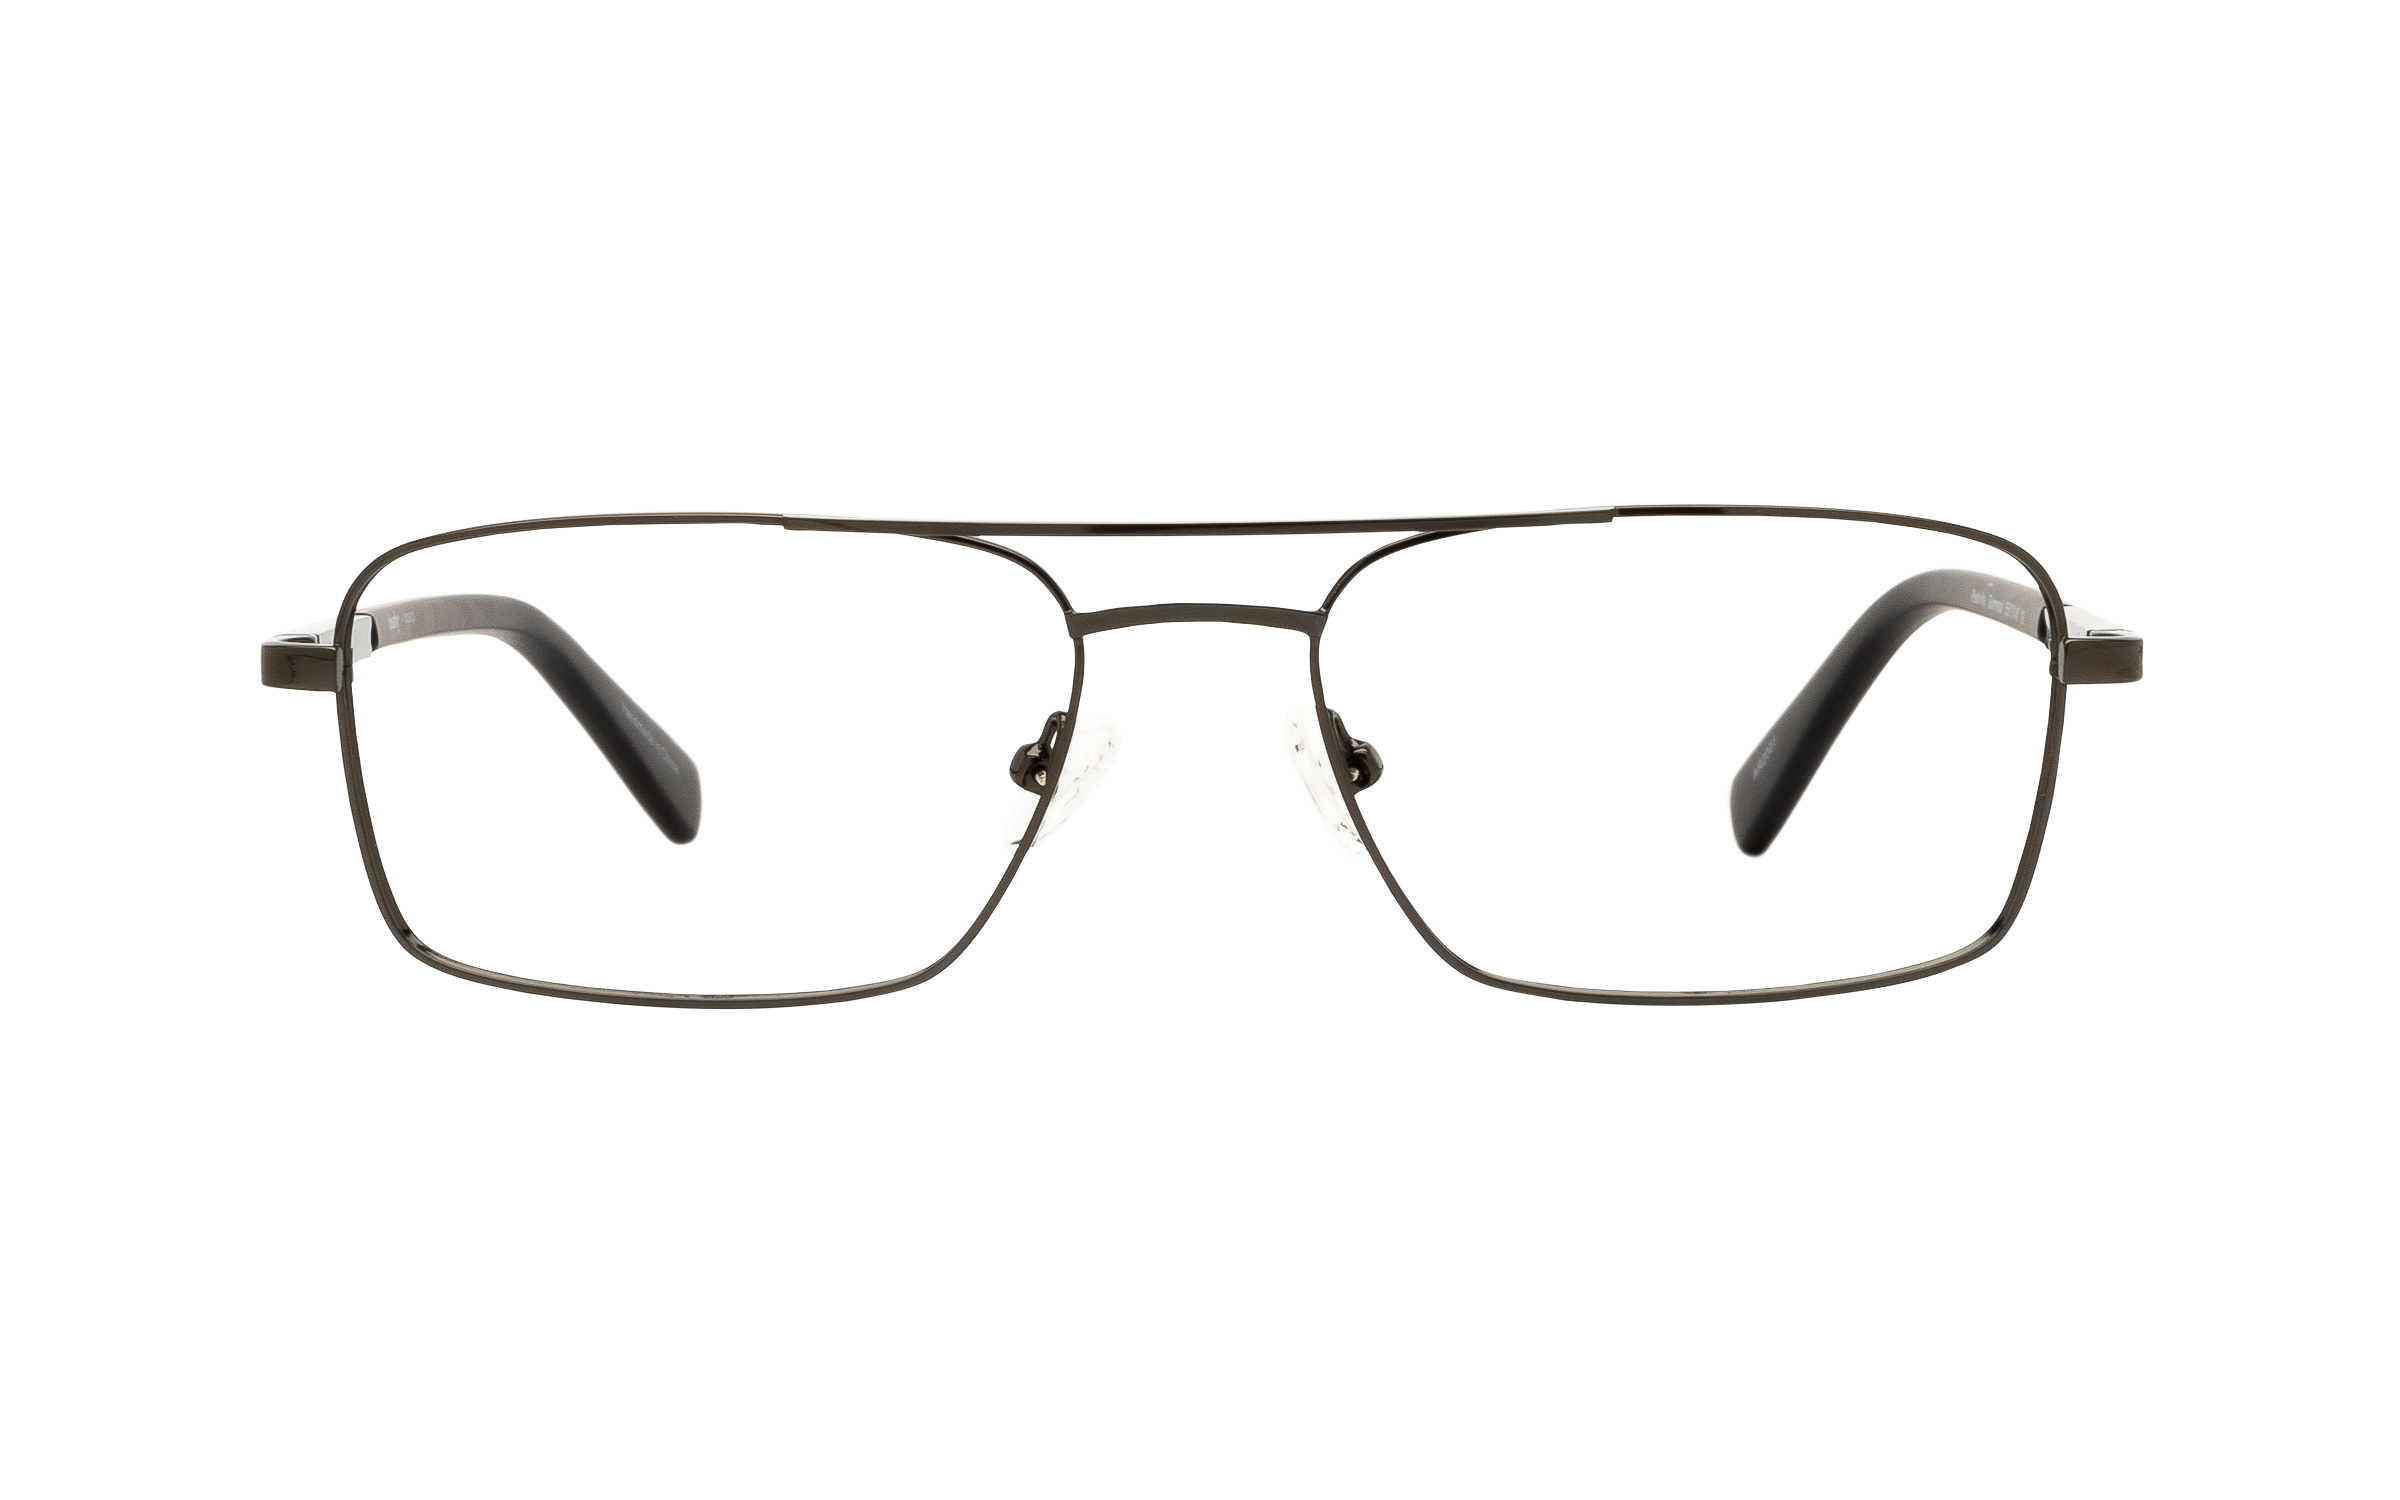 http://www.coastal.com/ - Clearly Basics Postville CLS062 C02 (55) Eyeglasses and Frame in Gunmetal Grey – Online Coastal